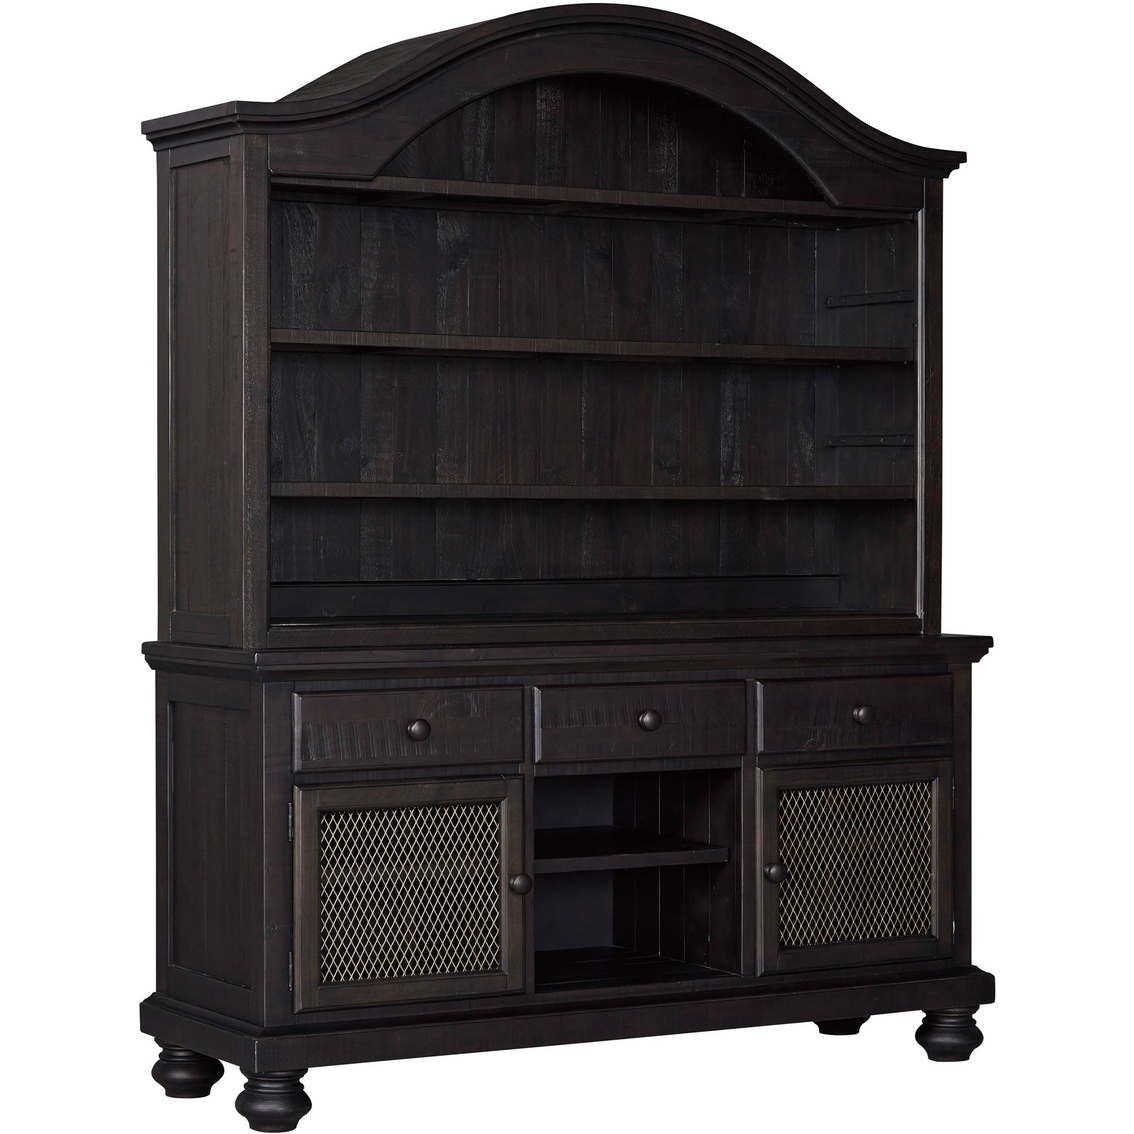 Dining Room Set With Hutch: Ashley Signature Design Sharlowe Dining Room Buffet